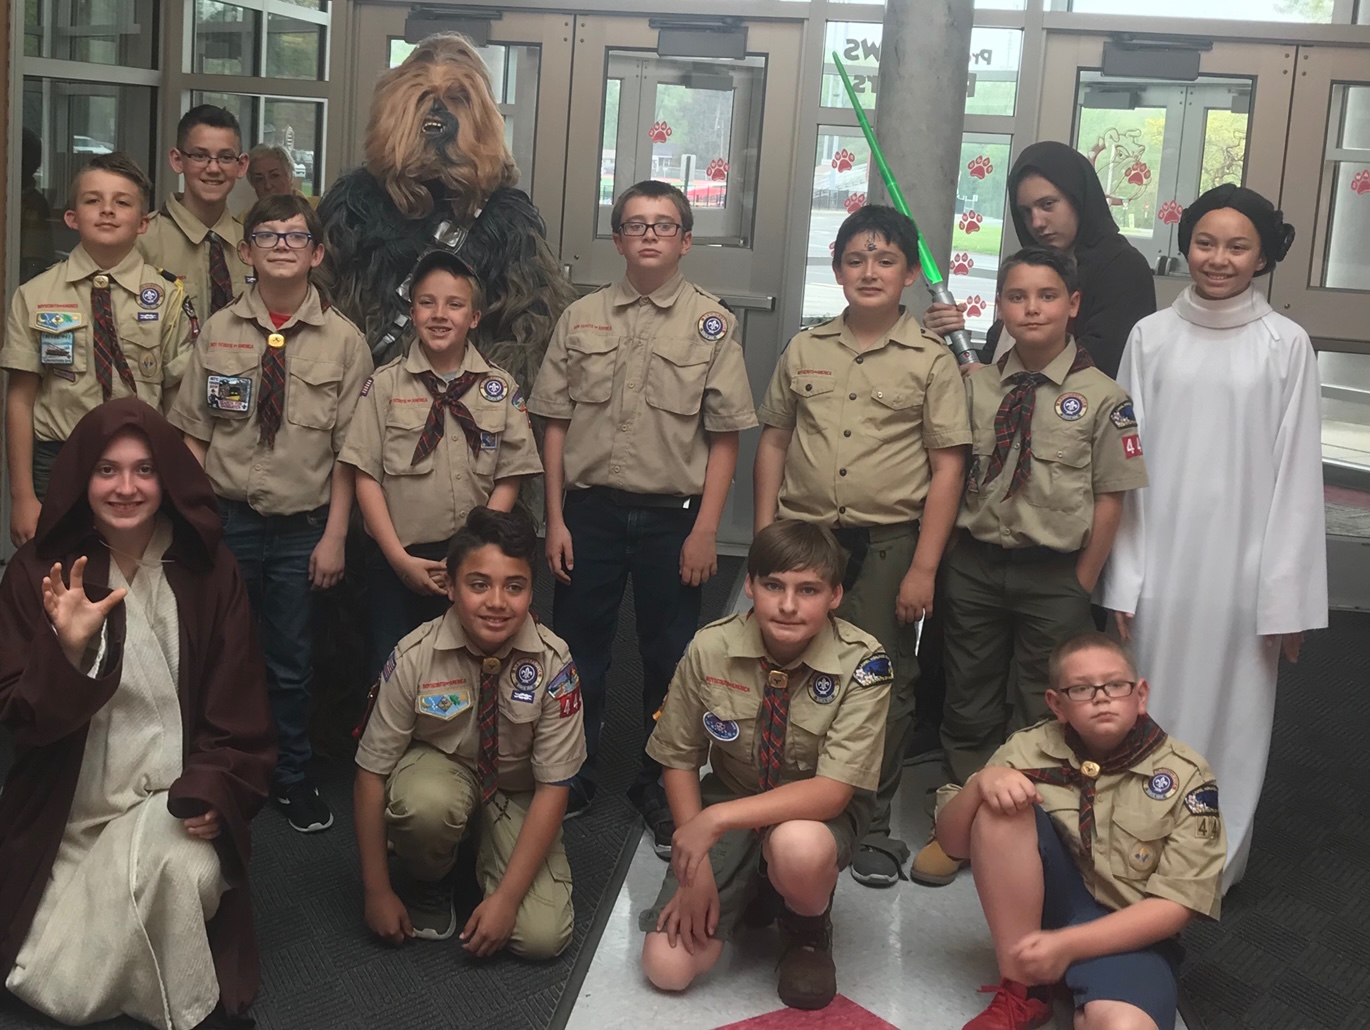 The new Boy Scouts pose for a picture with Star Wars characters in the Freedom Middle School lobby at the Blue and Gold Banquet on May 4.